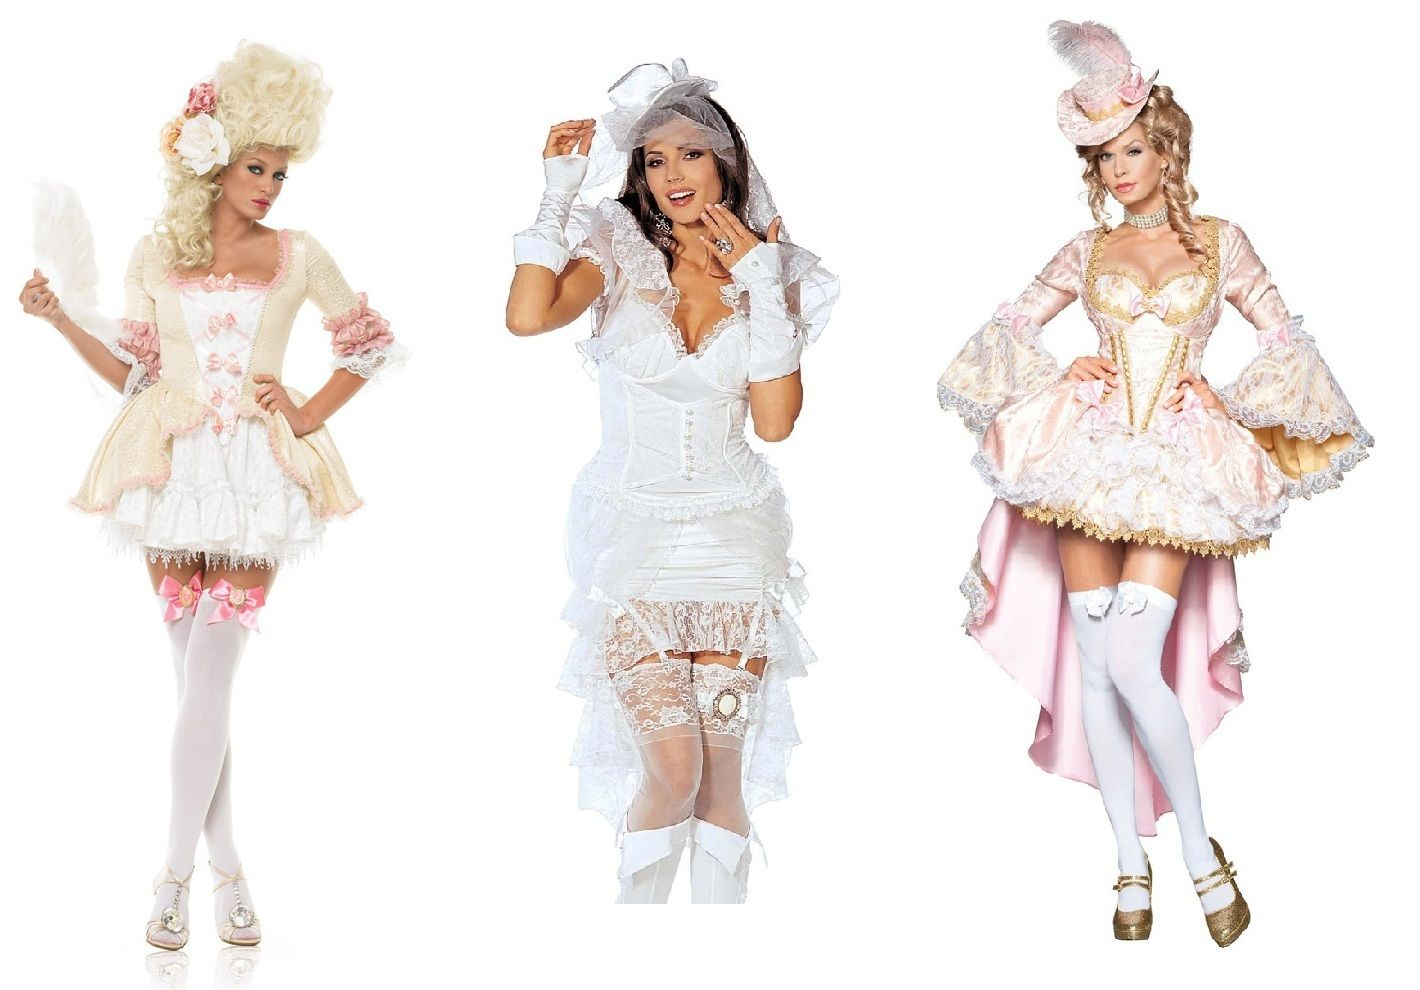 Three French Hens Inspired Wedding Hen Party Haha Bad Taste